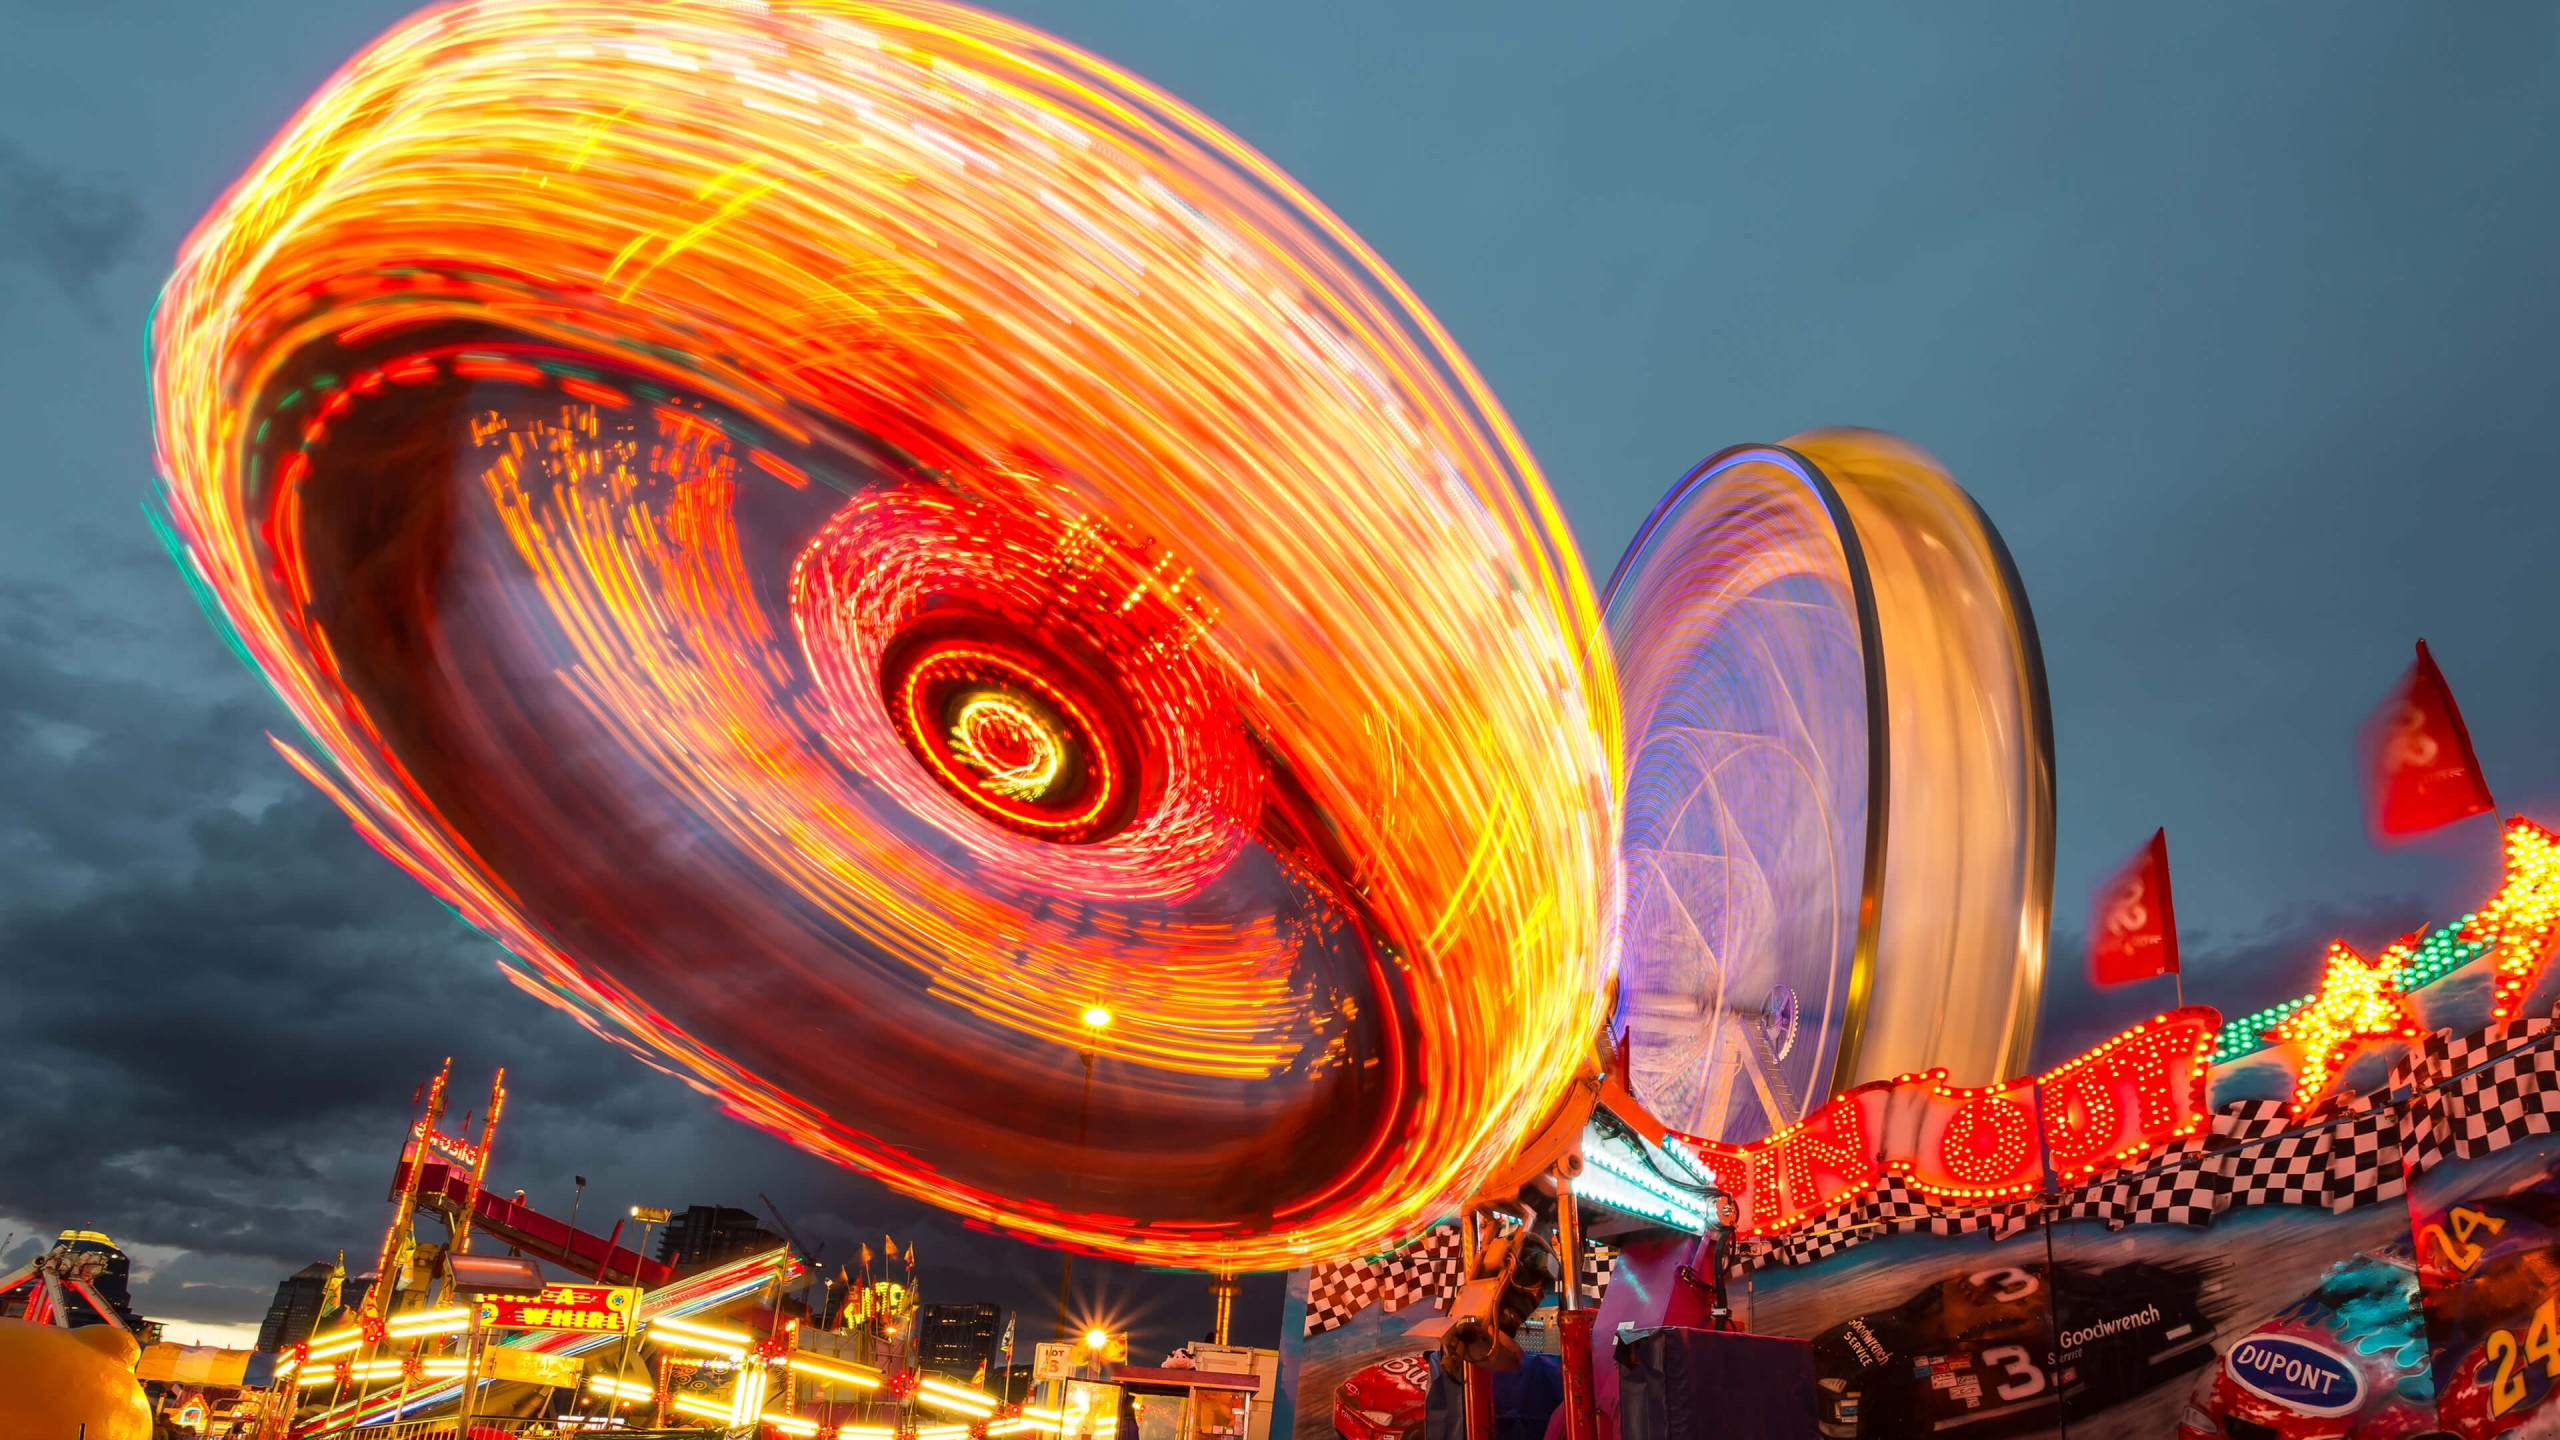 Download Calgary Stampede Lights HD wallpaper for 2560 x 1440 2560x1440